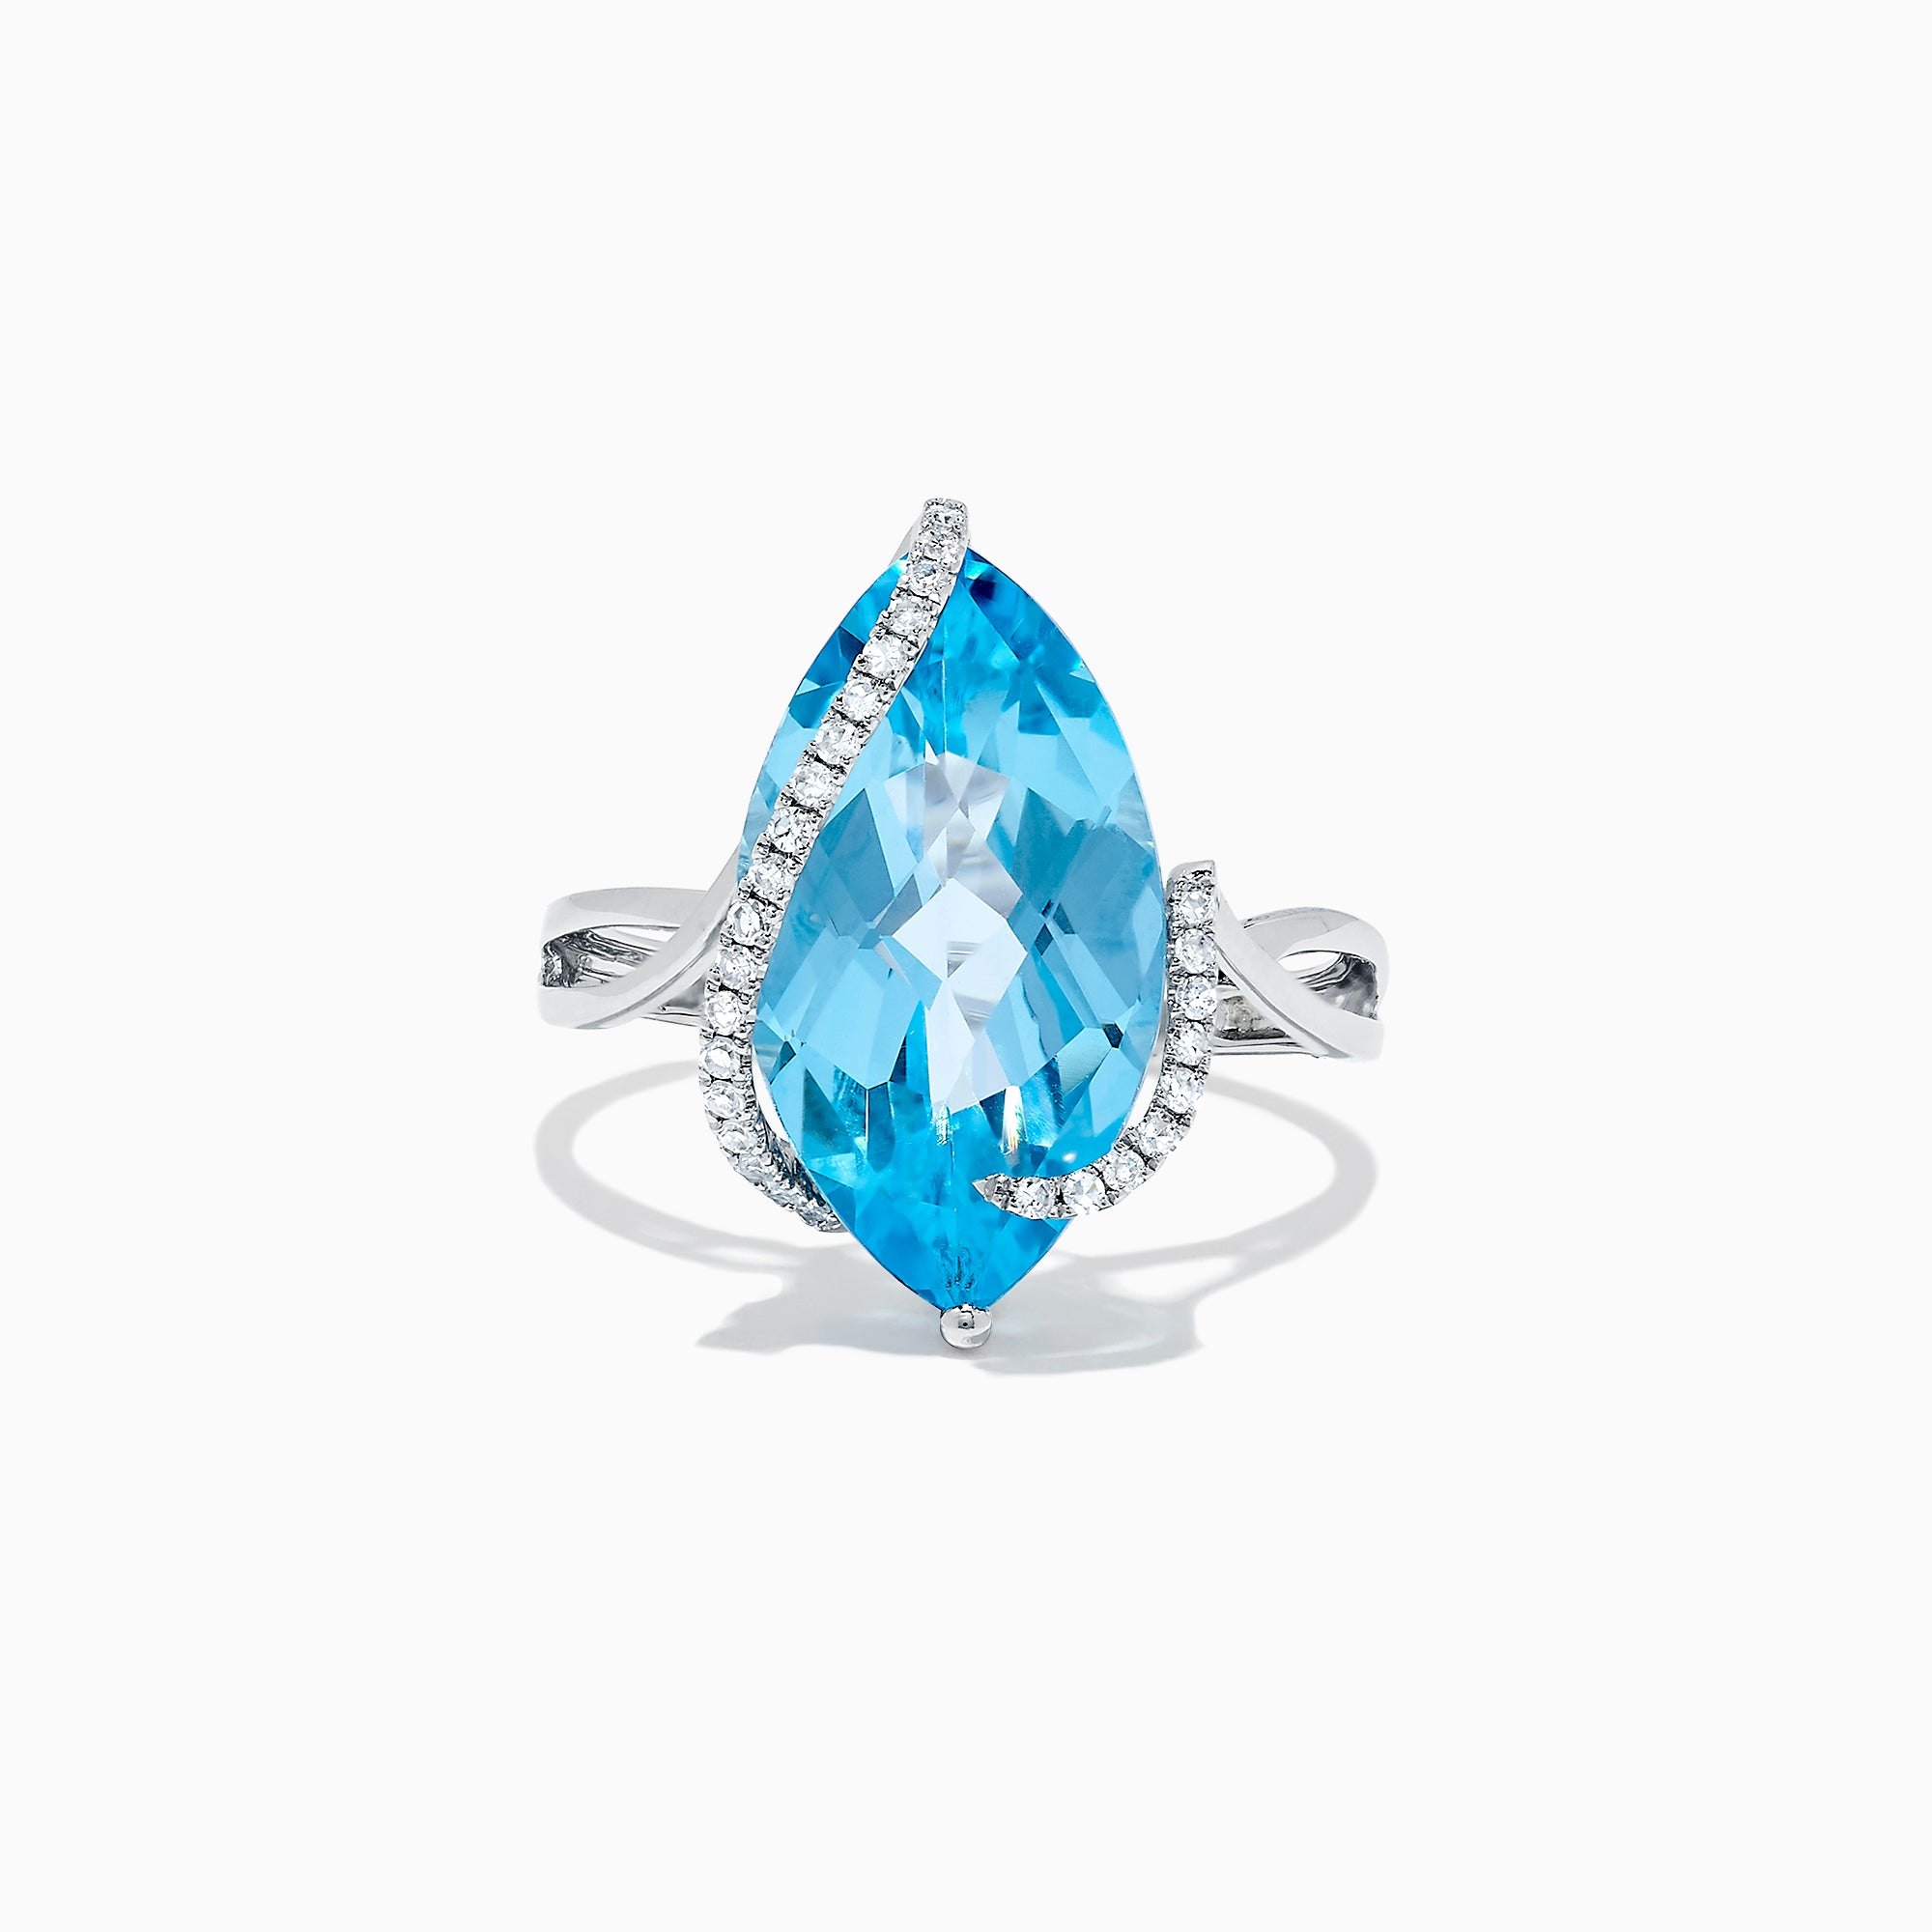 Effy Ocean Bleu 14K White Gold Blue Topaz & Diamond Ring, 7.27 TCW